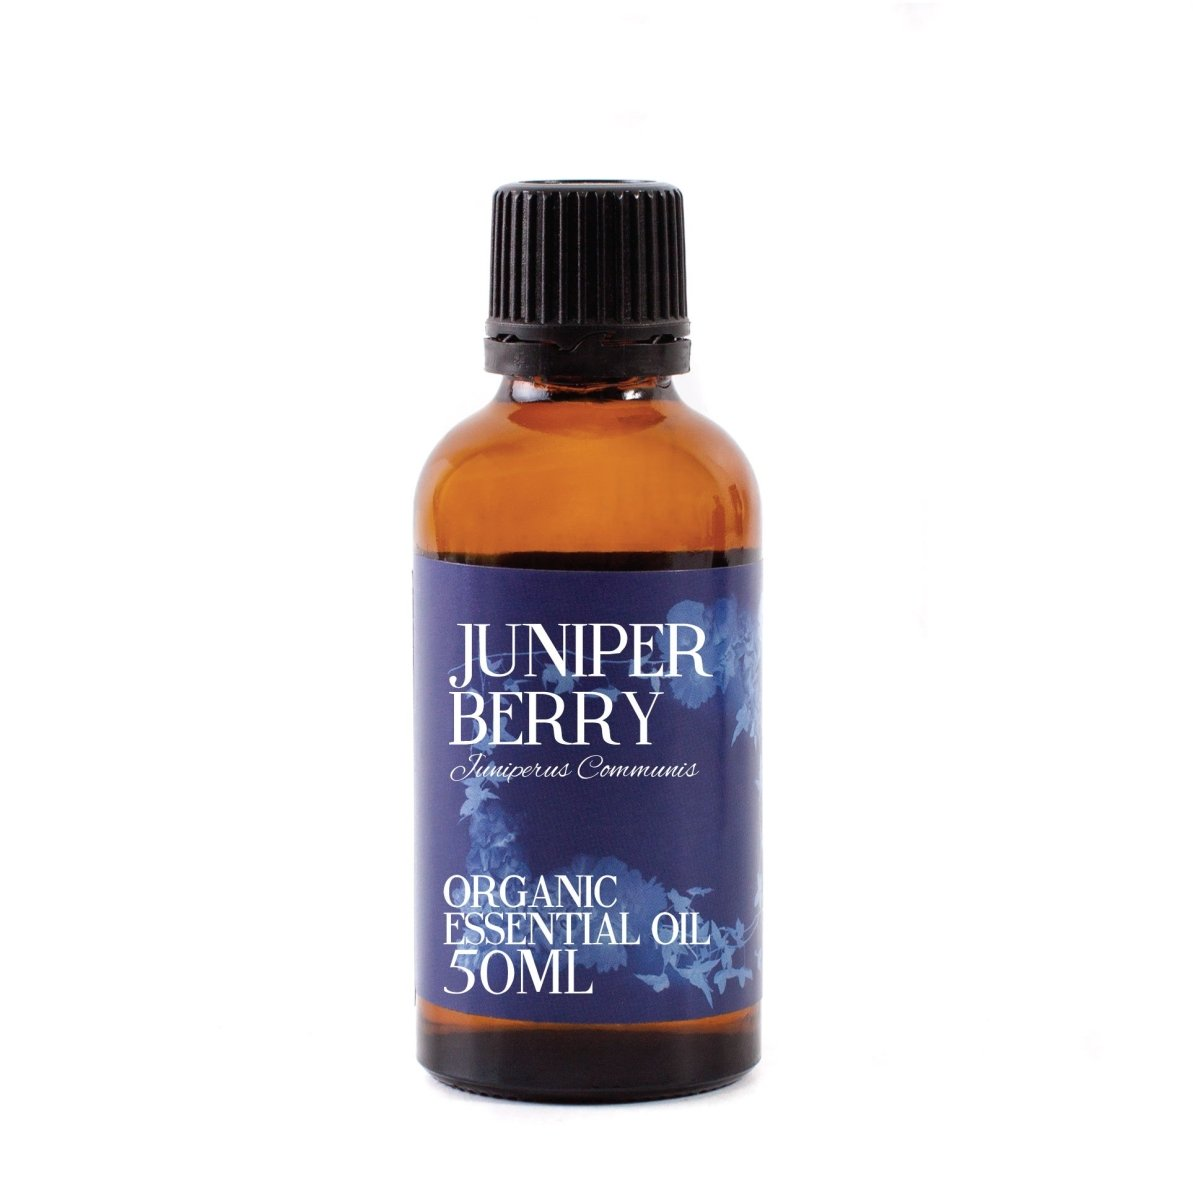 Juniper Berry Organic Essential Oil - Mystic Moments UK